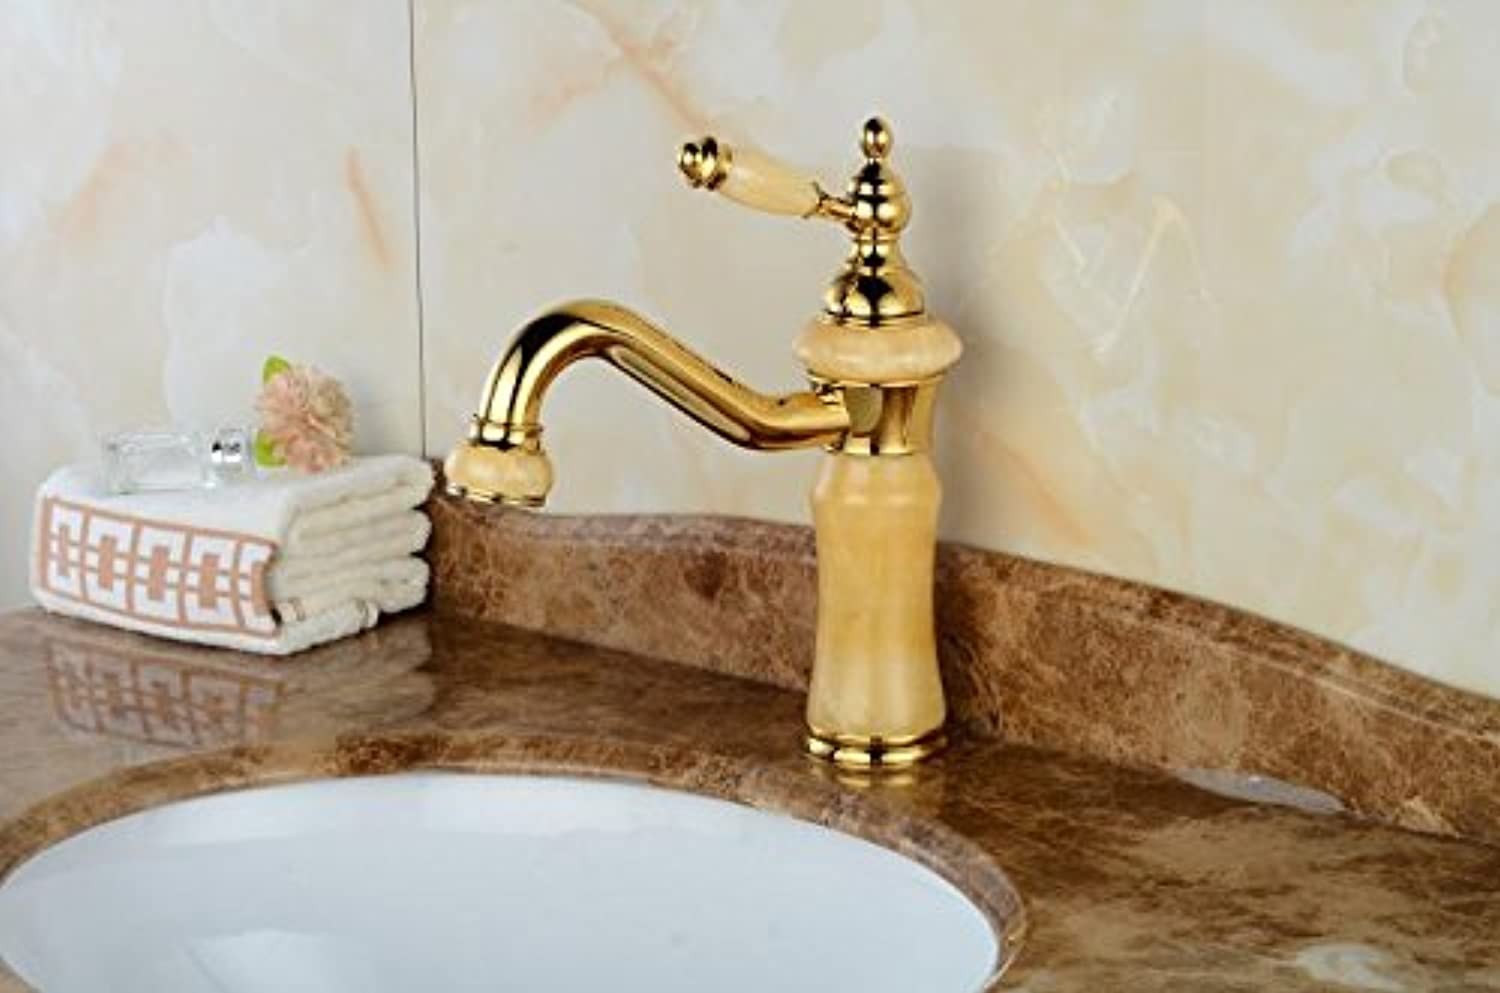 NewBorn Faucet Kitchen Or Bathroom Sink Mixer Tap Tap The Copper gold Black Ancient Basin Sink Hot And Cold Tap Natural Jade Surface The Tub Water Tap Black Pull-Down